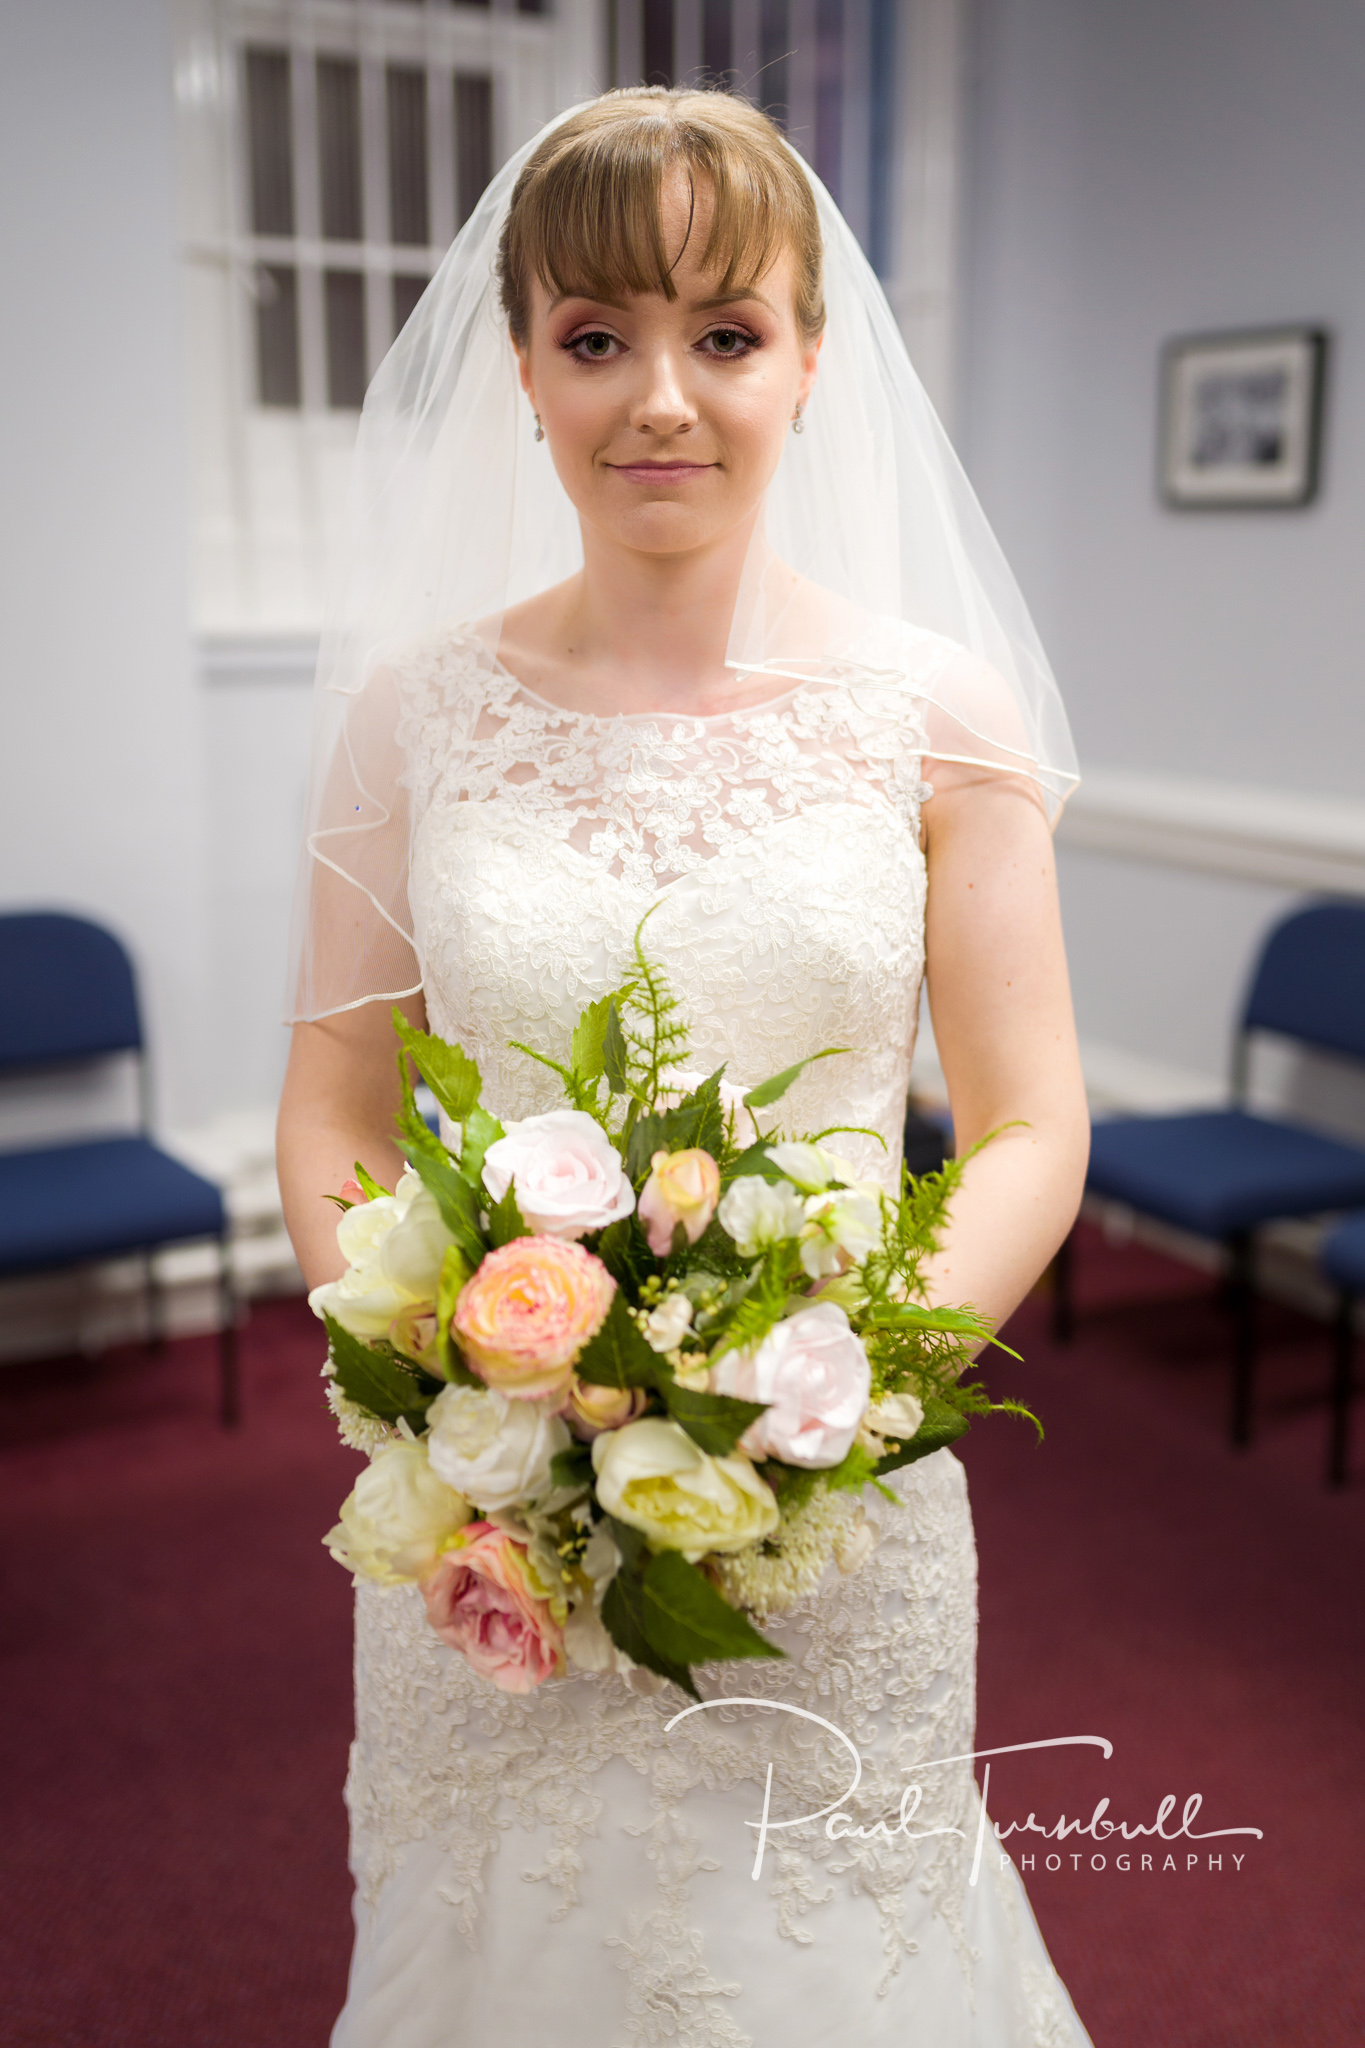 wedding-photographer-pontefract-yorkshire-laura-keanu-016.jpg